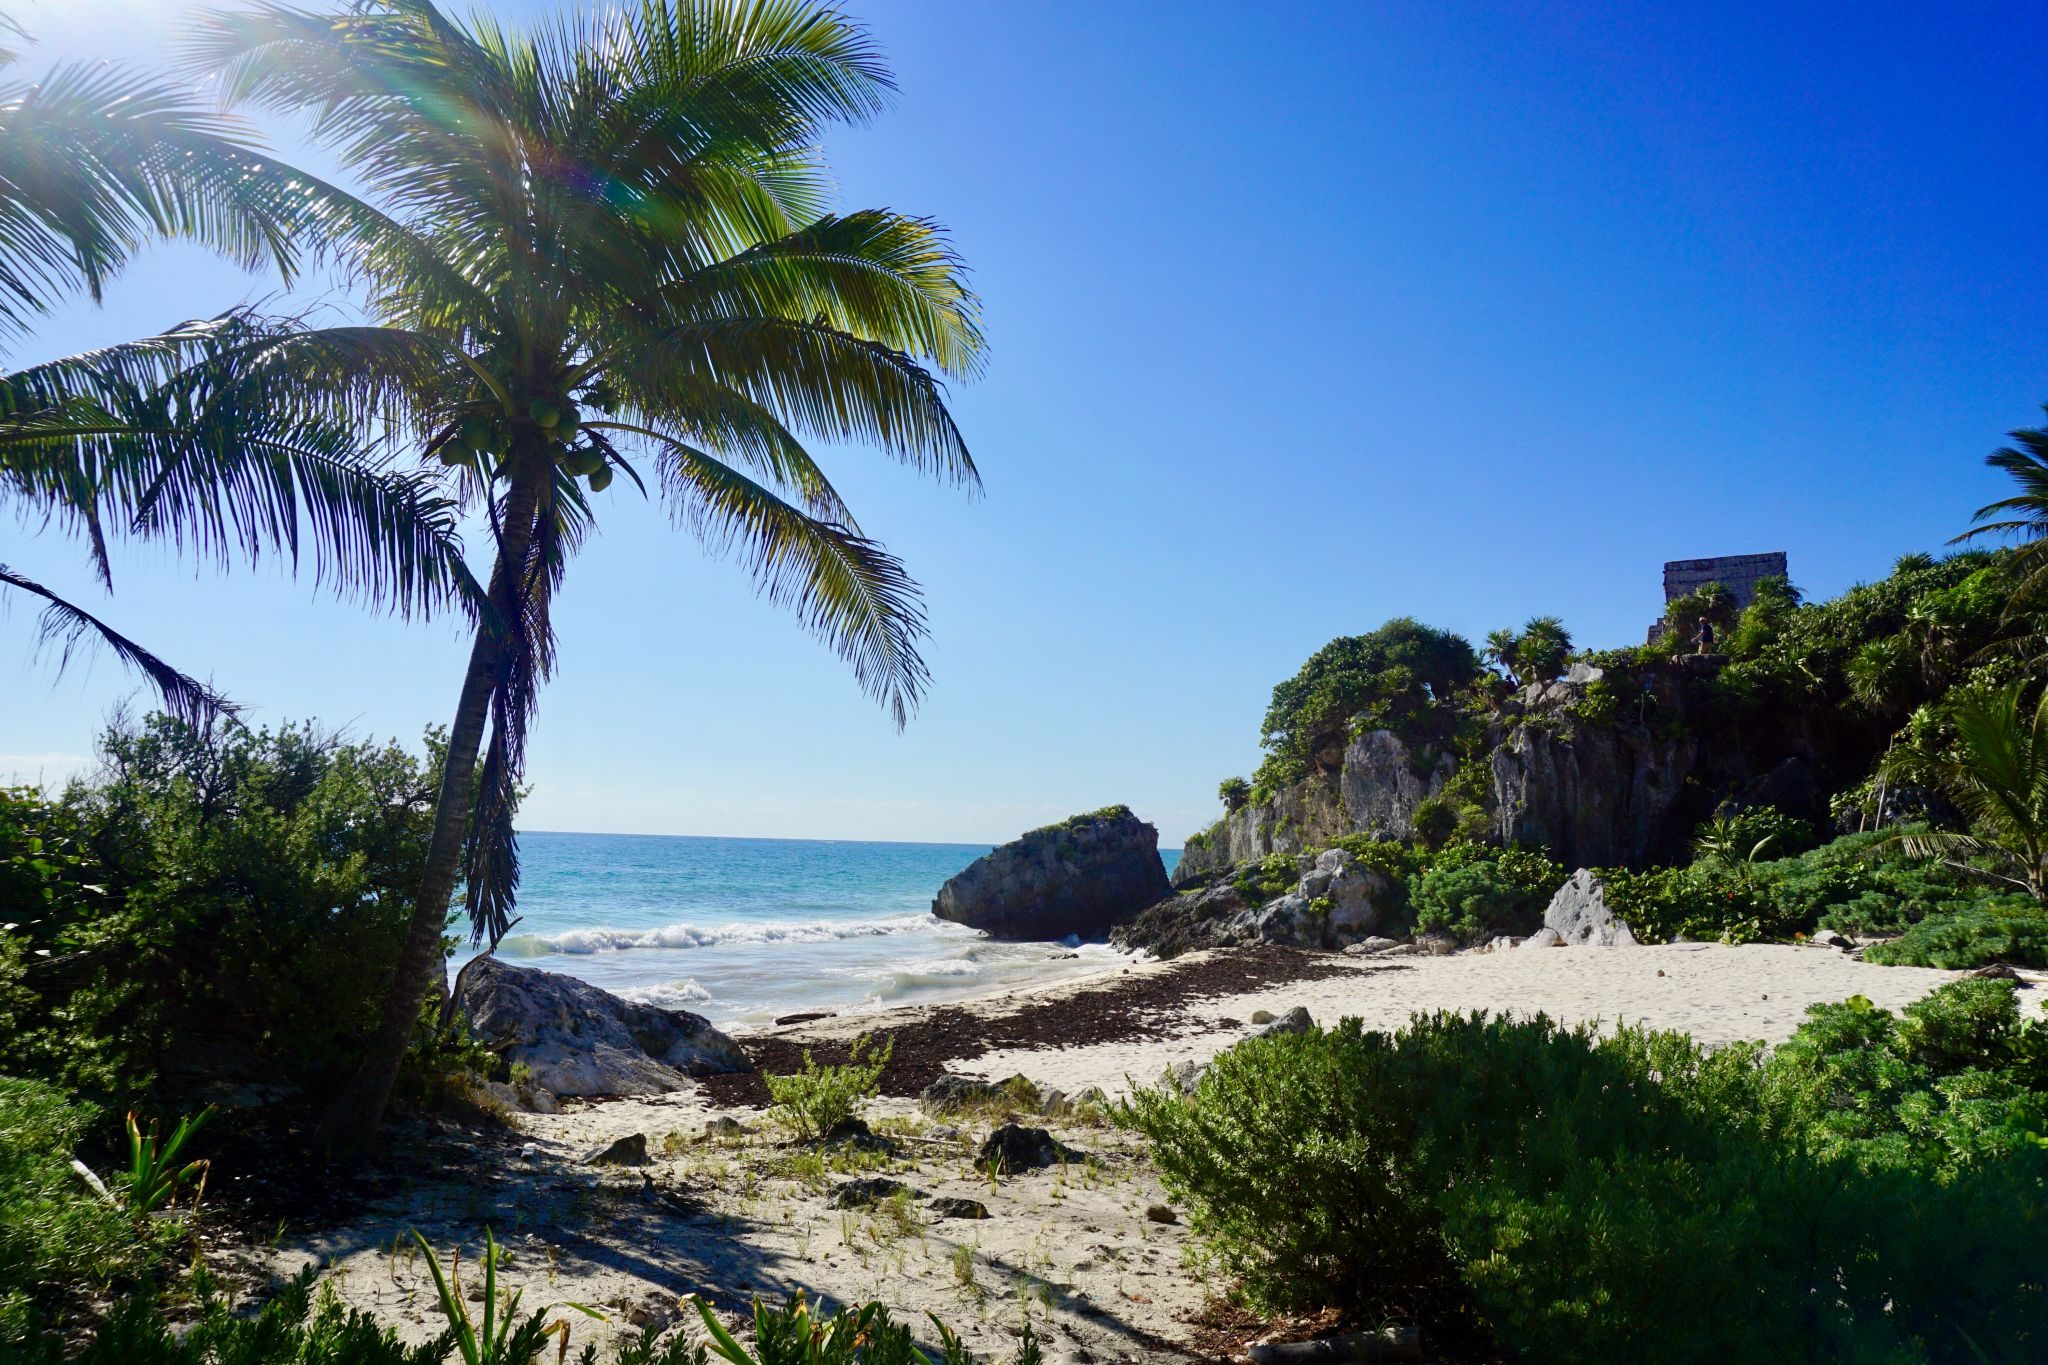 How to See the Tulum Ruins